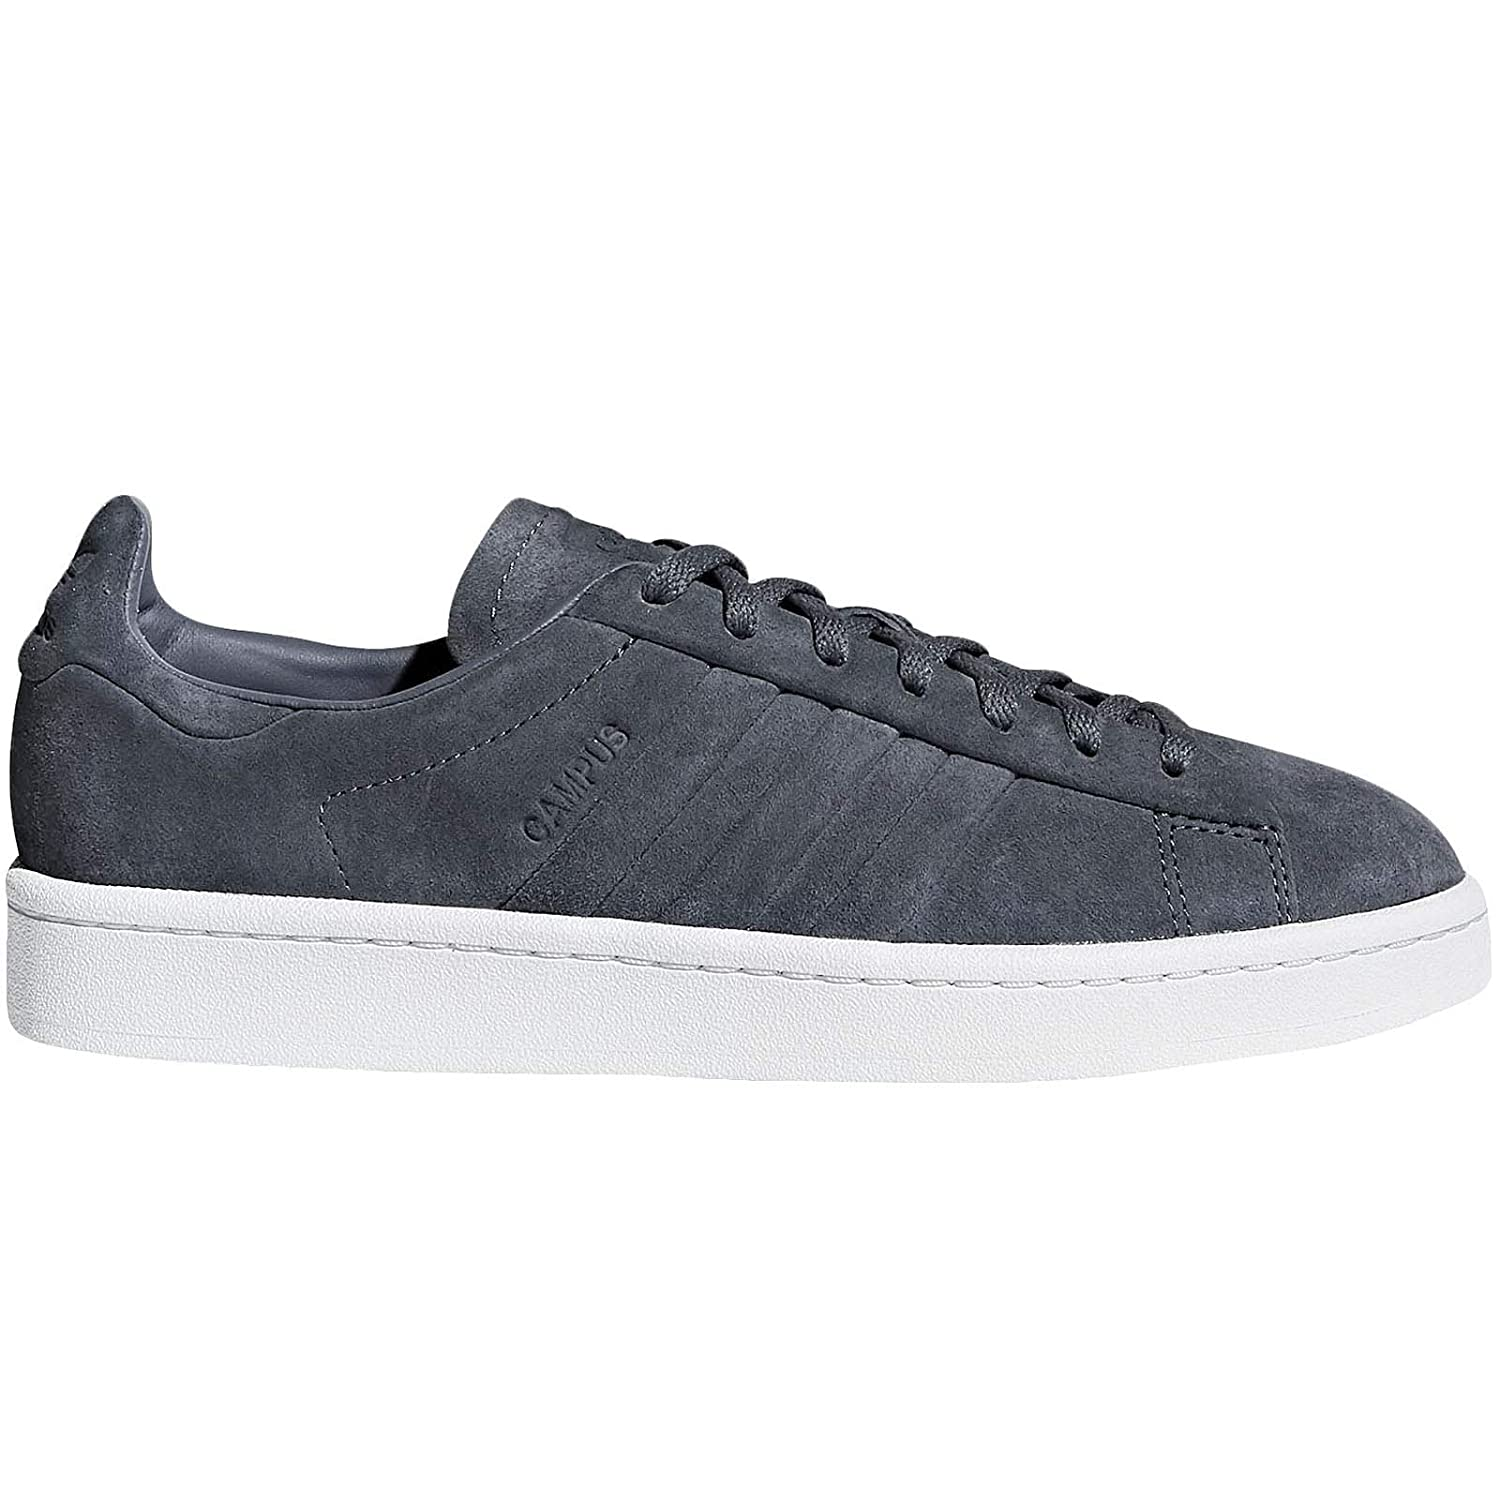 Adidas Campus Stitch and Turn Turnschuhe Damen